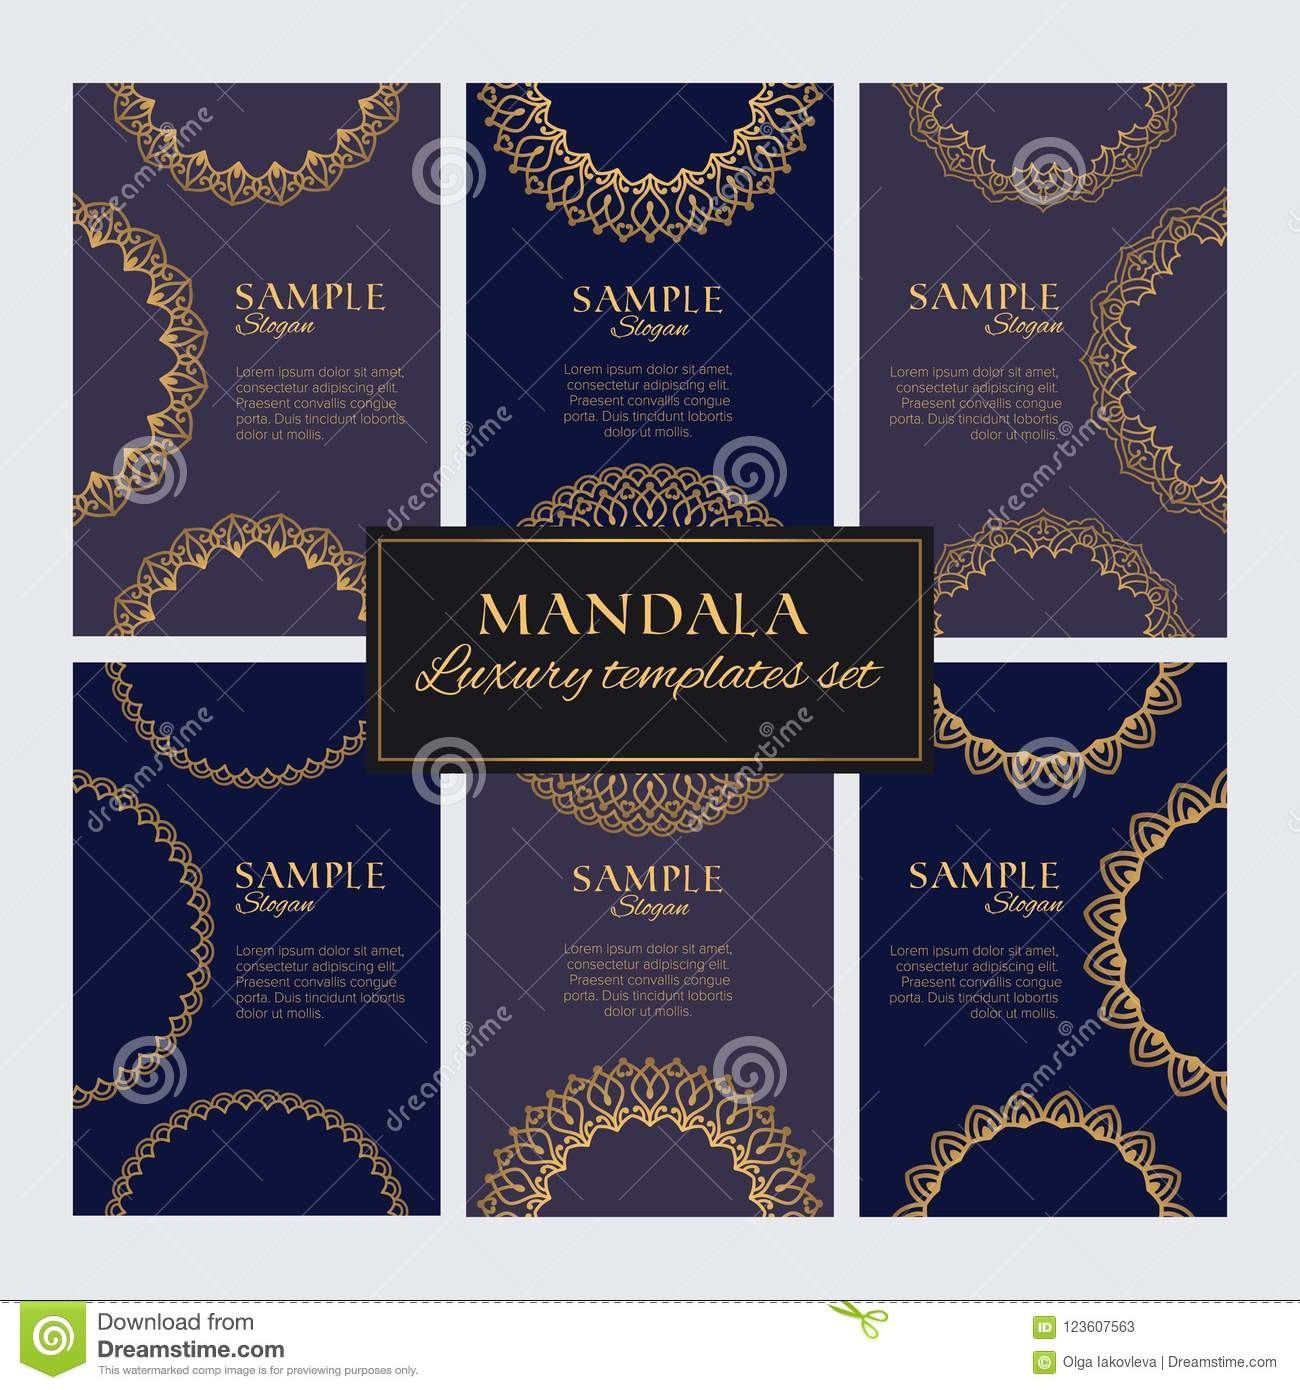 Set of luxury golden oriental ornaments, patterns and elements on dark blue backgrounds